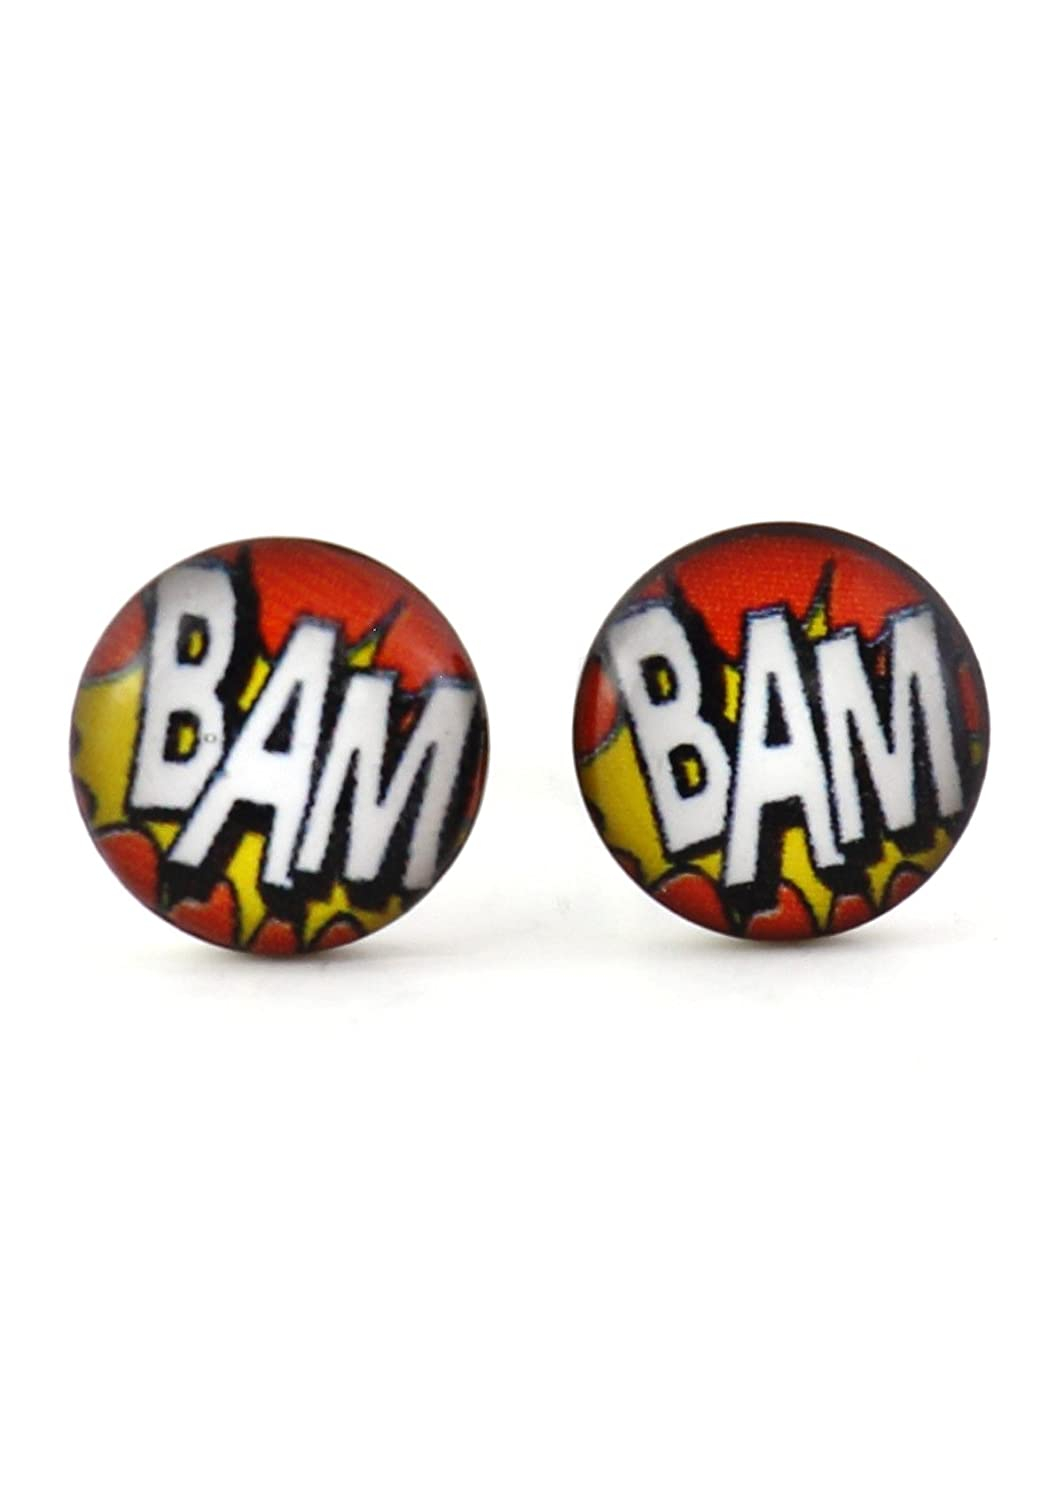 Stud Earrings Silver Tone EL20 Onomatopoeia Pop Art Posts Fashion Jewelry Comic Book BAM